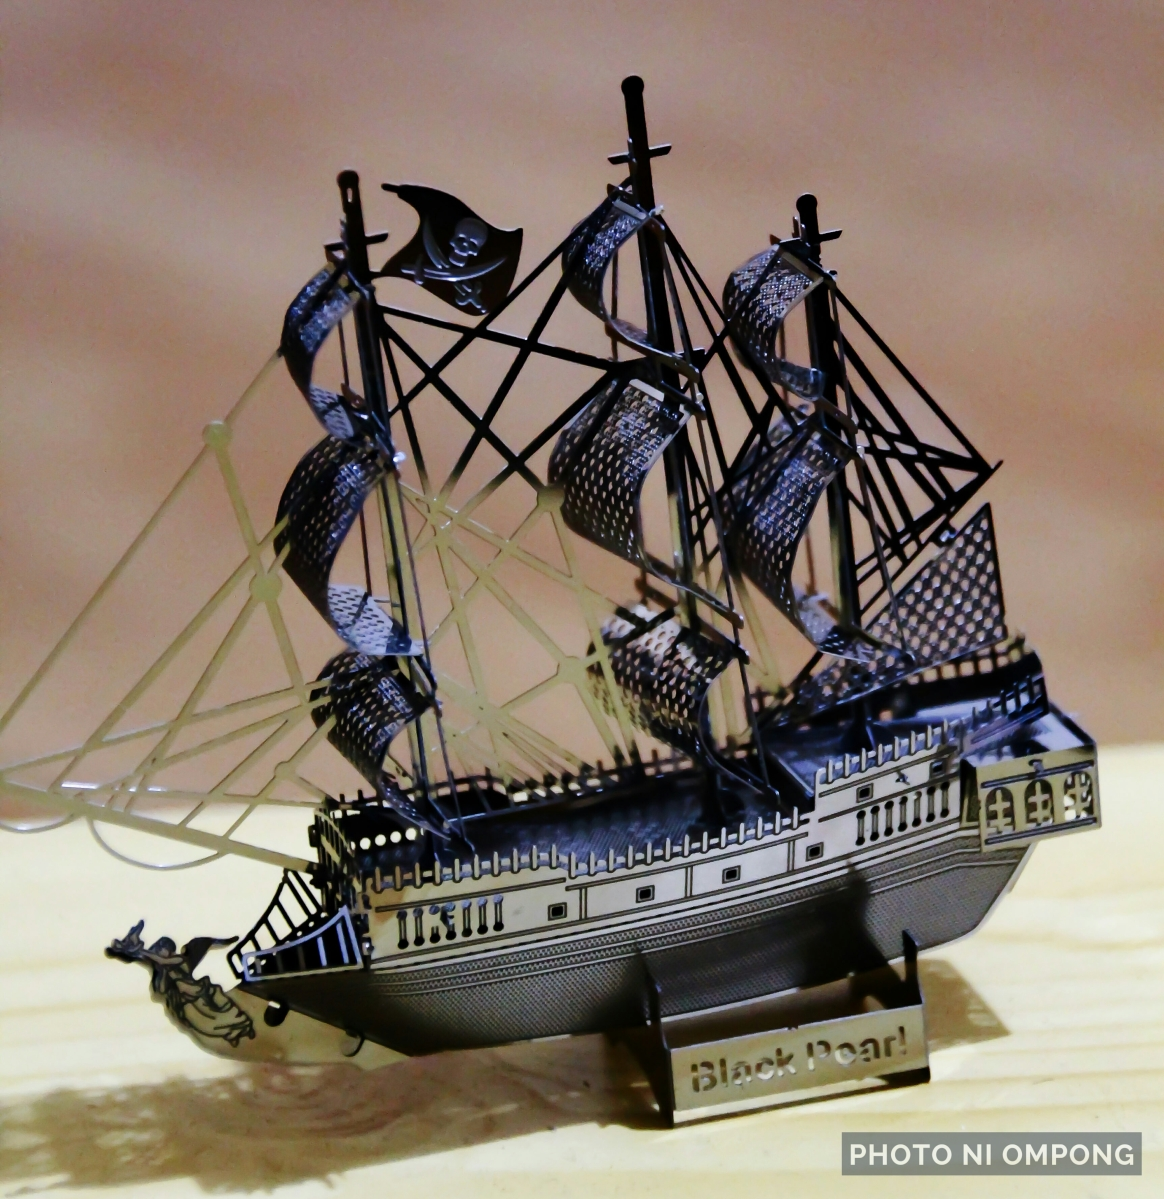 My Own Black Pearl Ship...!